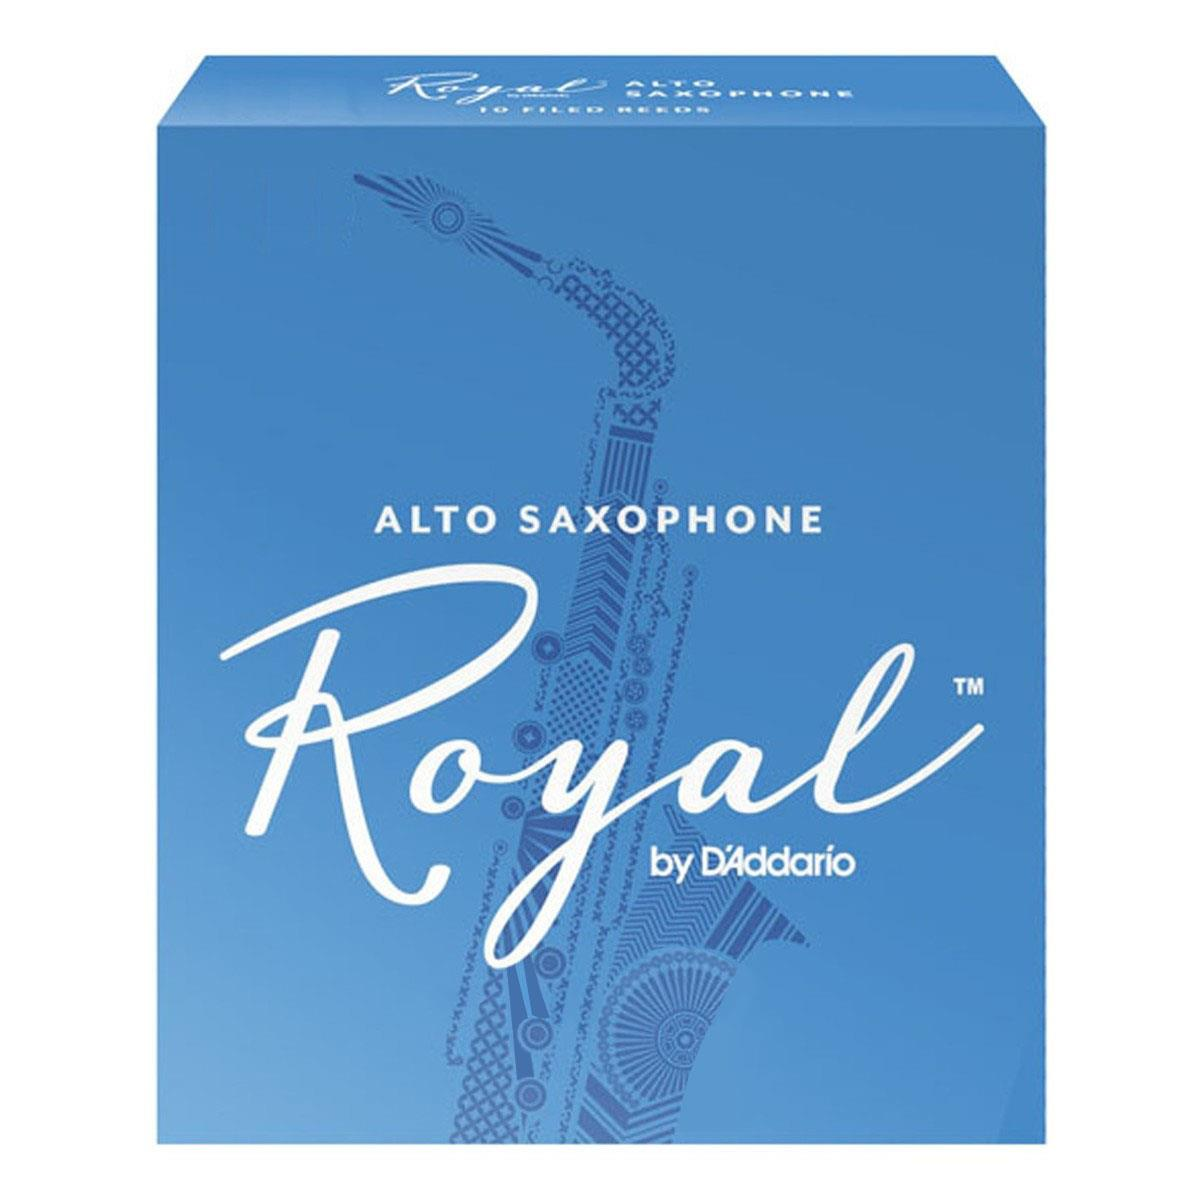 Image of D'Addario Woodwind Royal RJB0315 Alto Sax Reeds Strength 1.5 3-pack 0046716575951